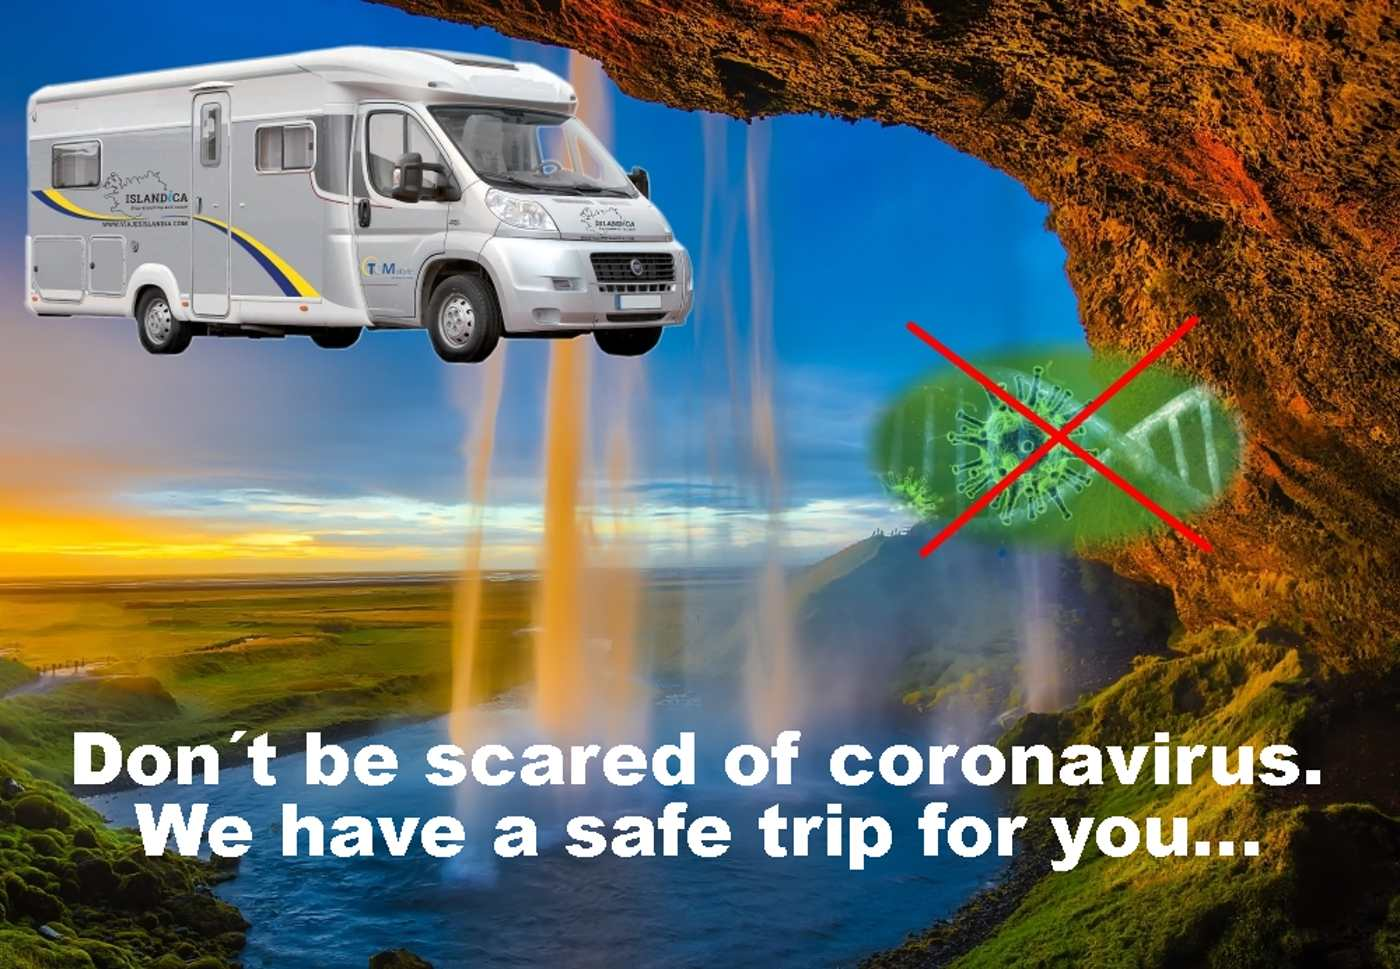 Do not be afraid of the coronavirus and come to Iceland, we have the perfect trip for you and your safety!